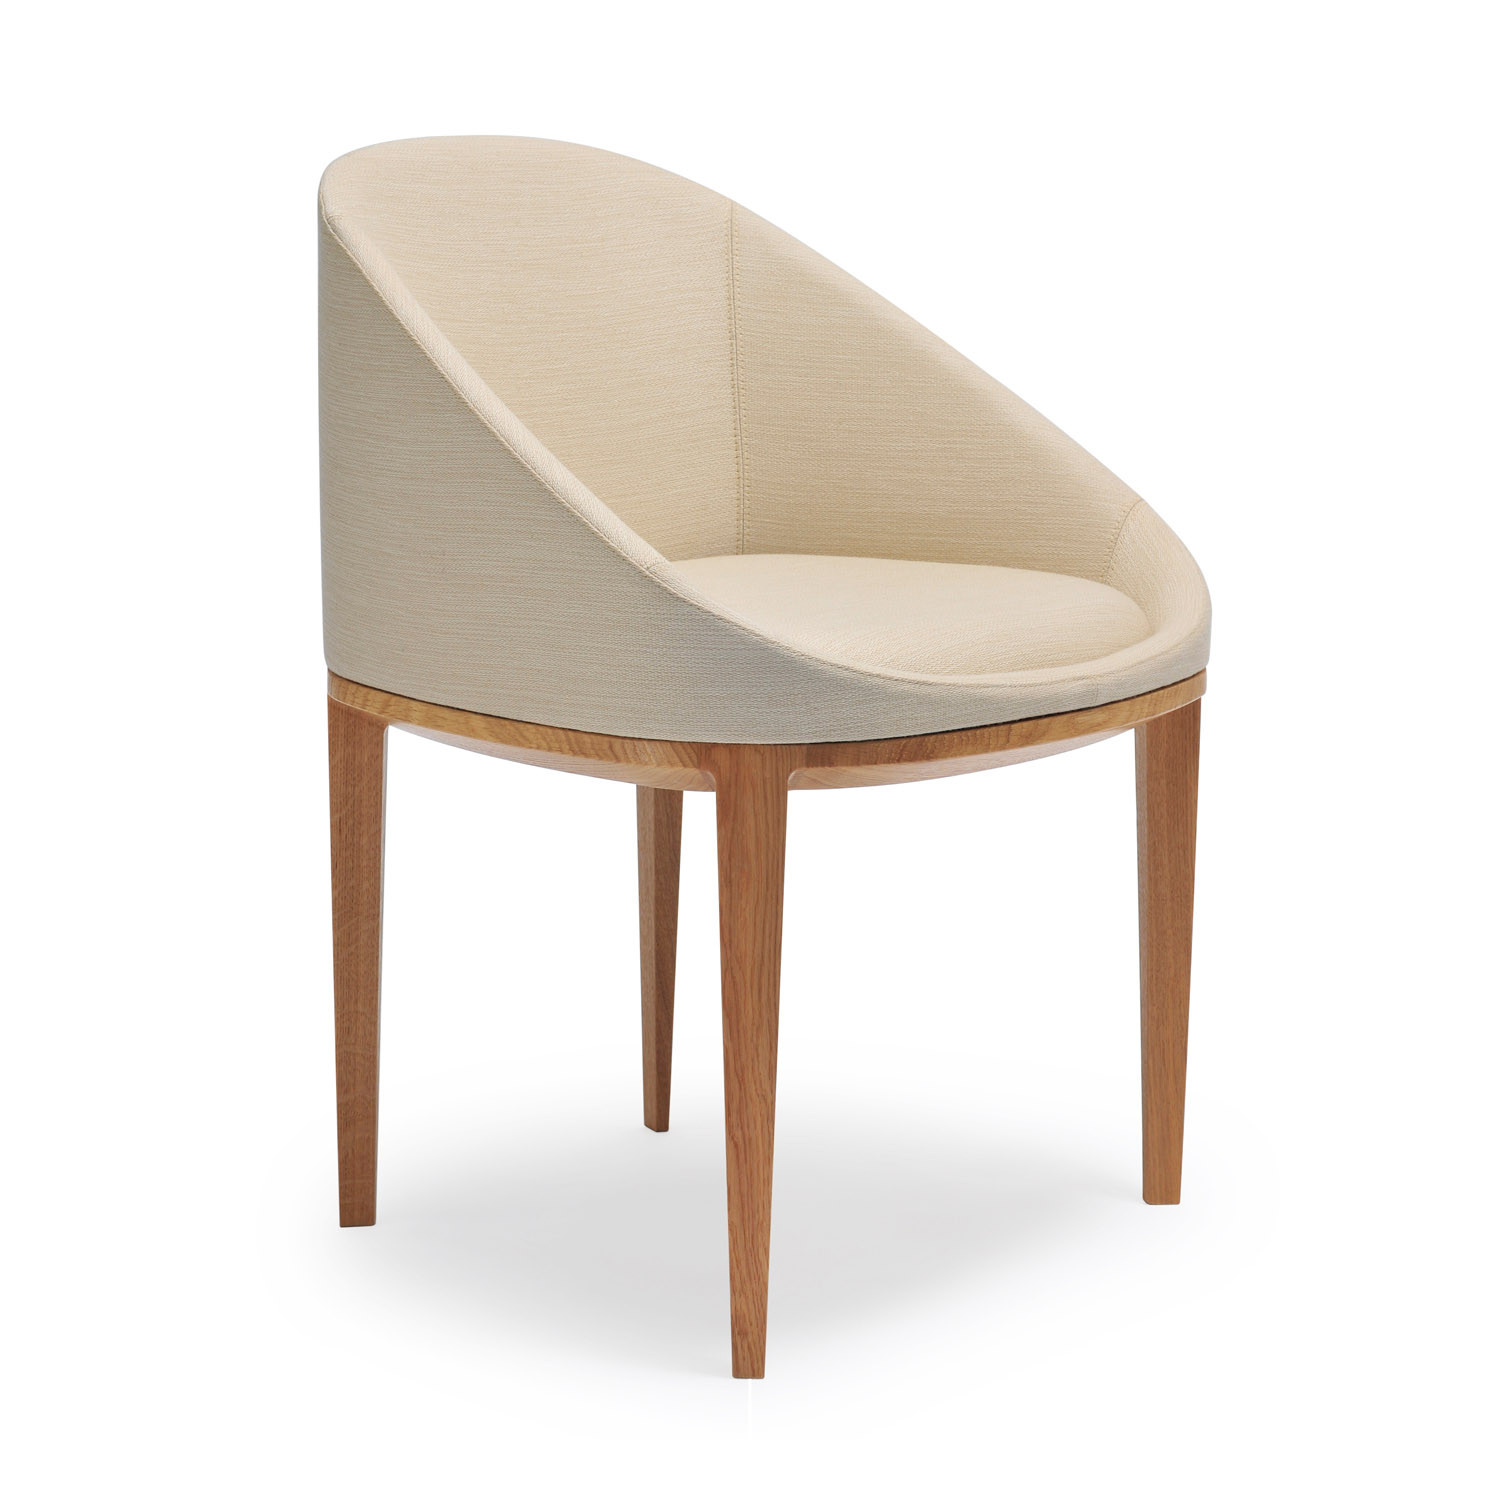 Orlo Chair